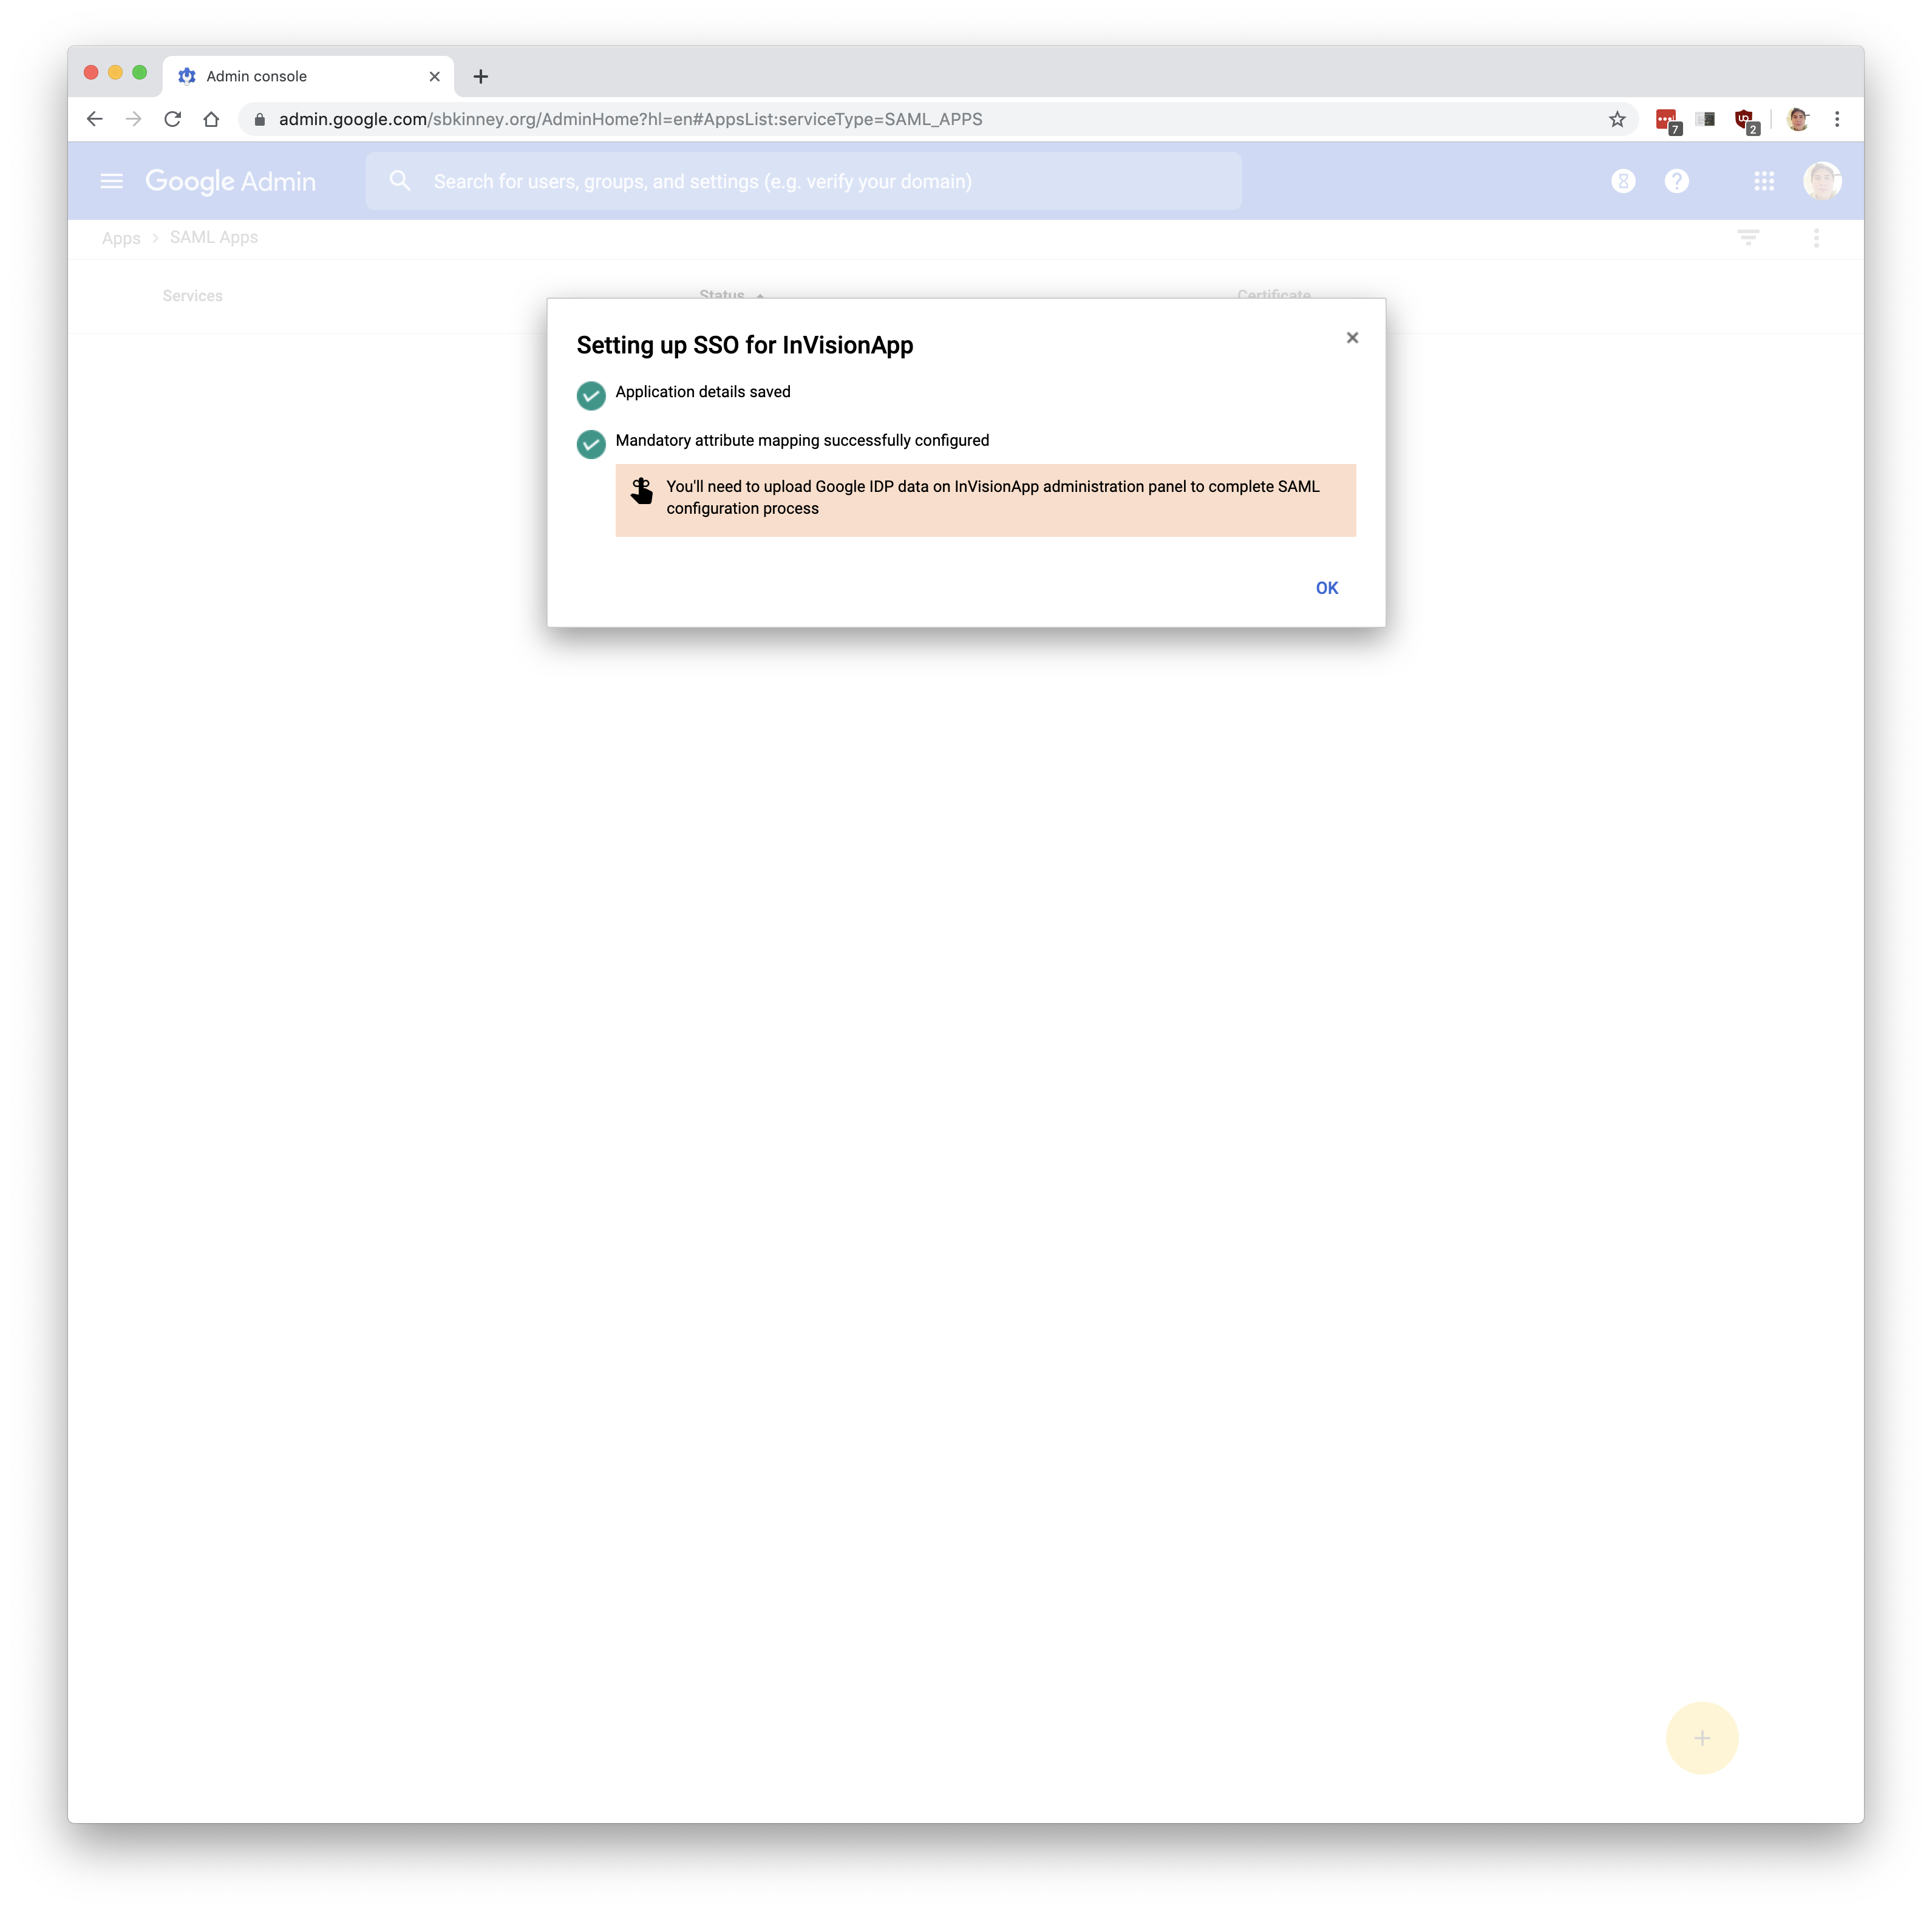 google-admin-console-setting-up-sso-for-invisionapp.png